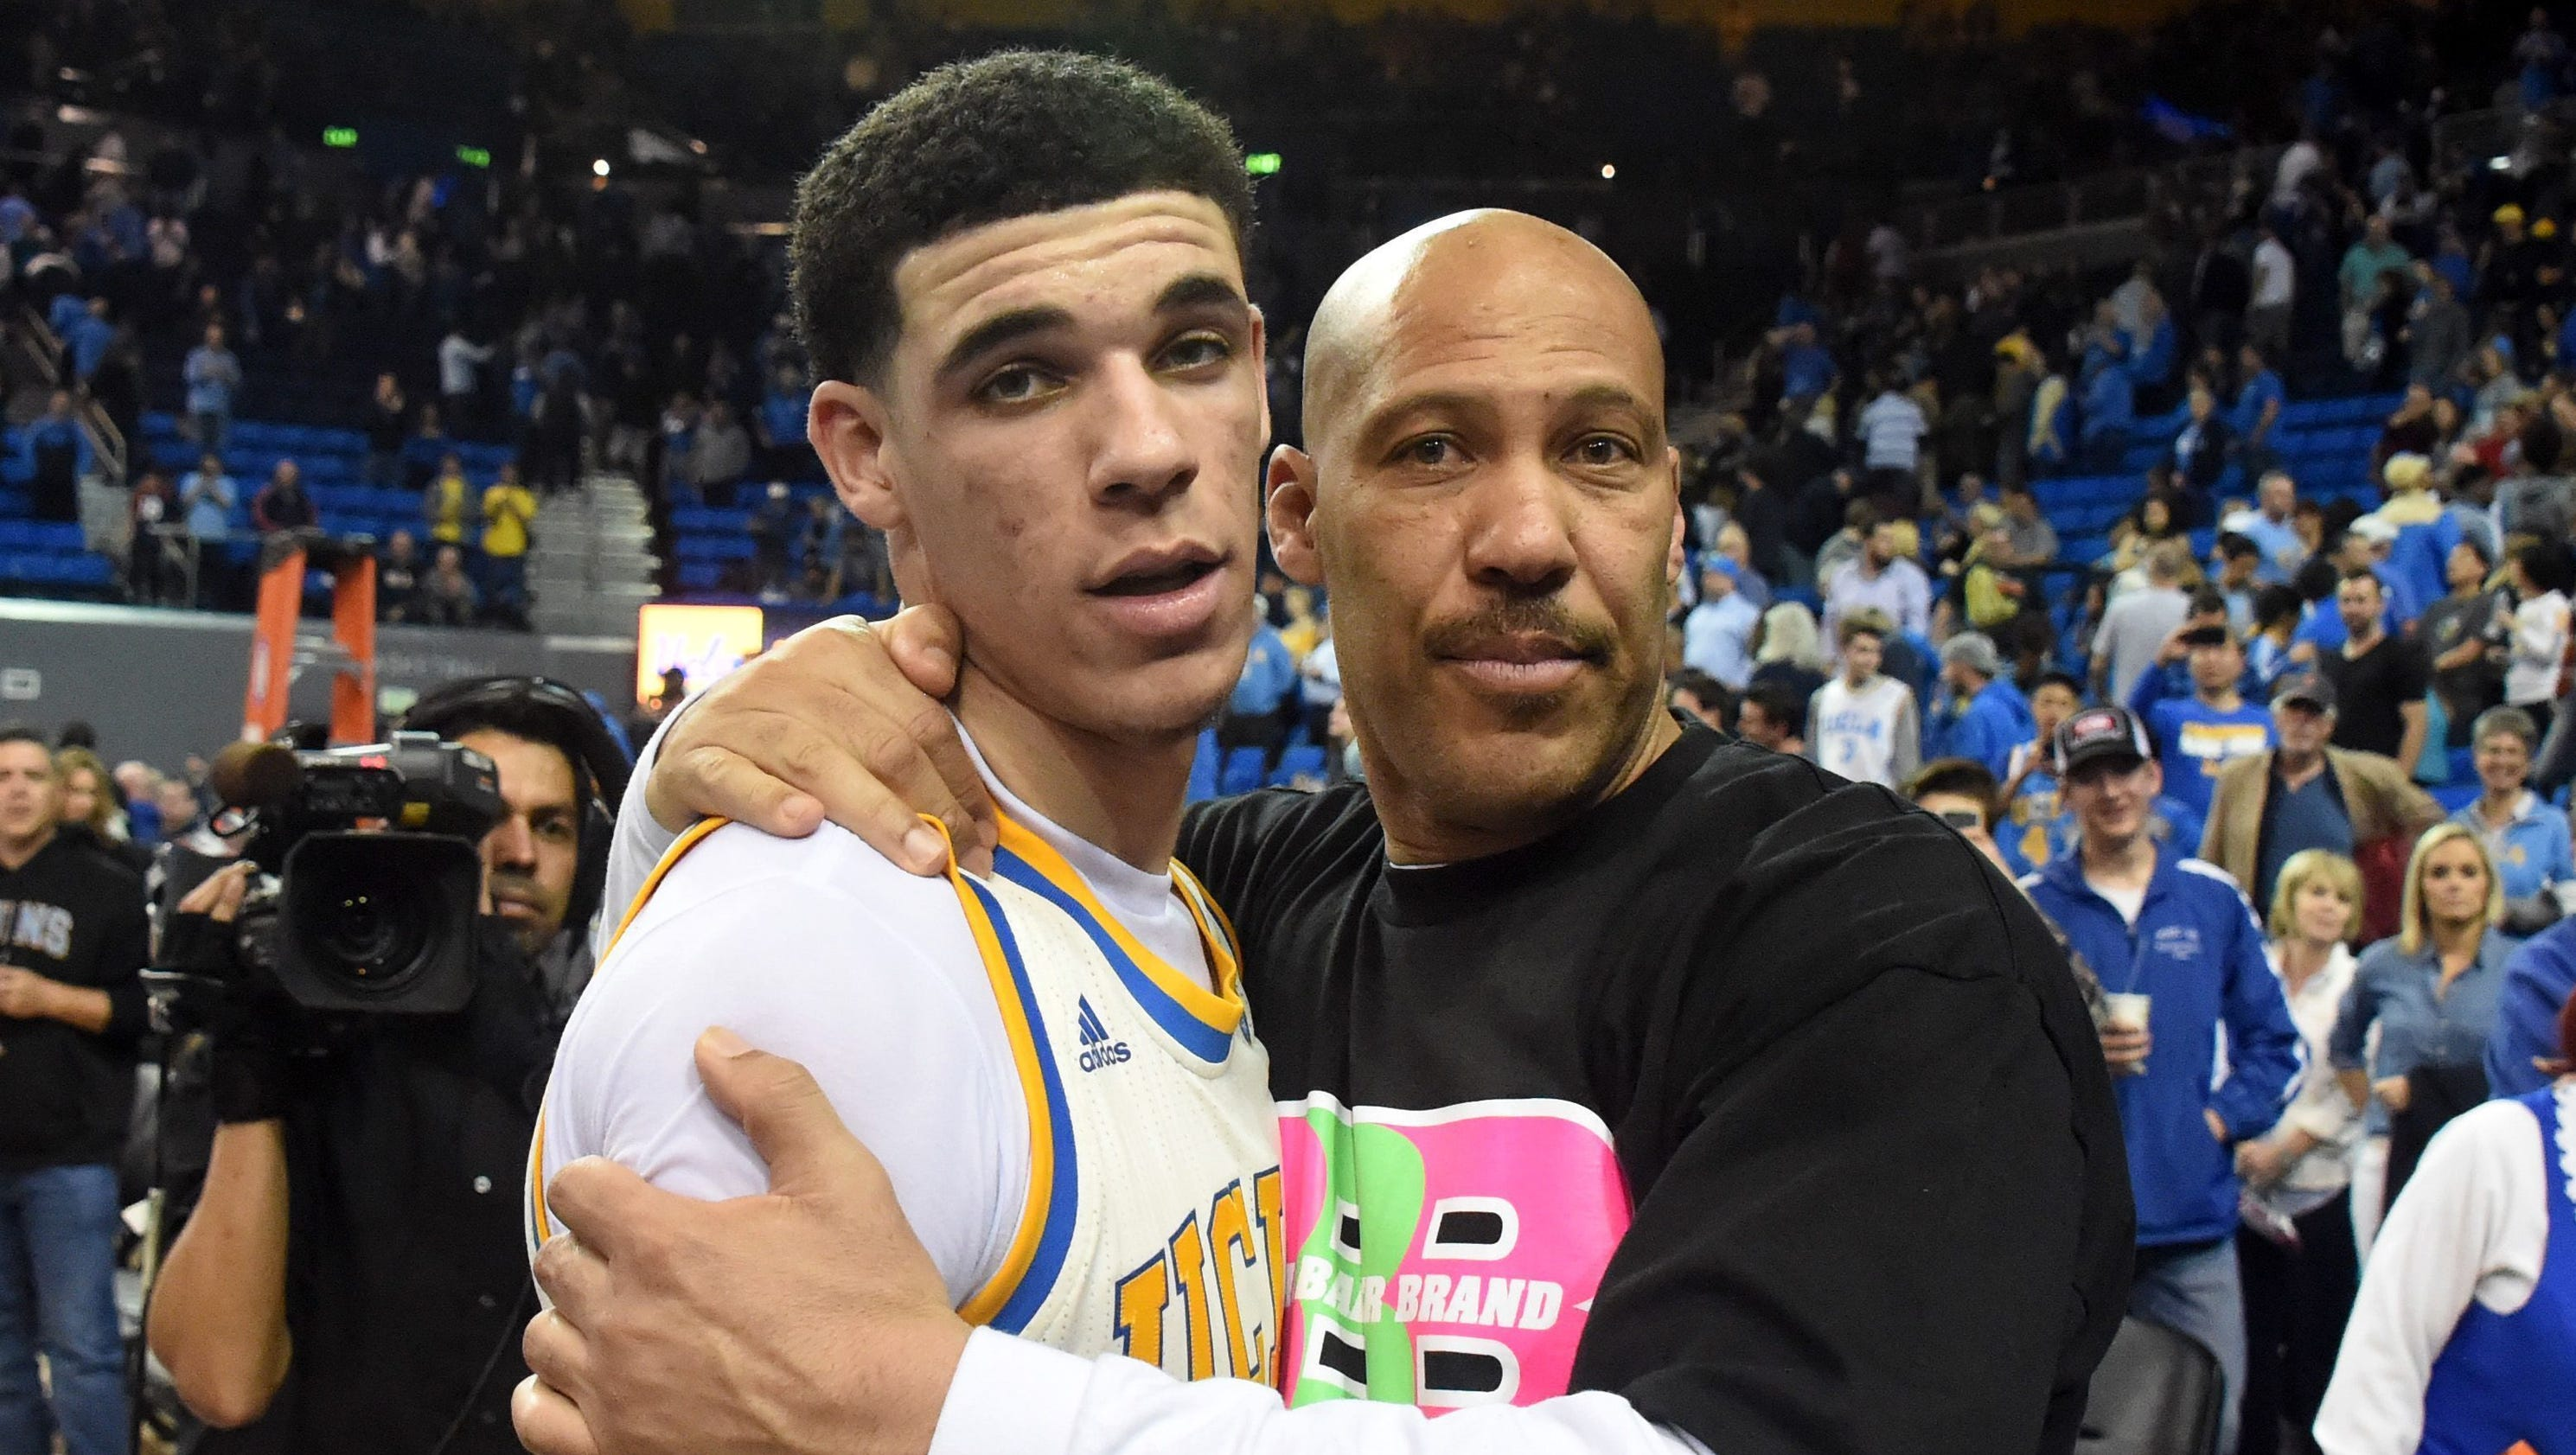 bacd1b62d19 chicago.cbslocal.com Lonzo Ball roasts LaVar in Father's Day ad